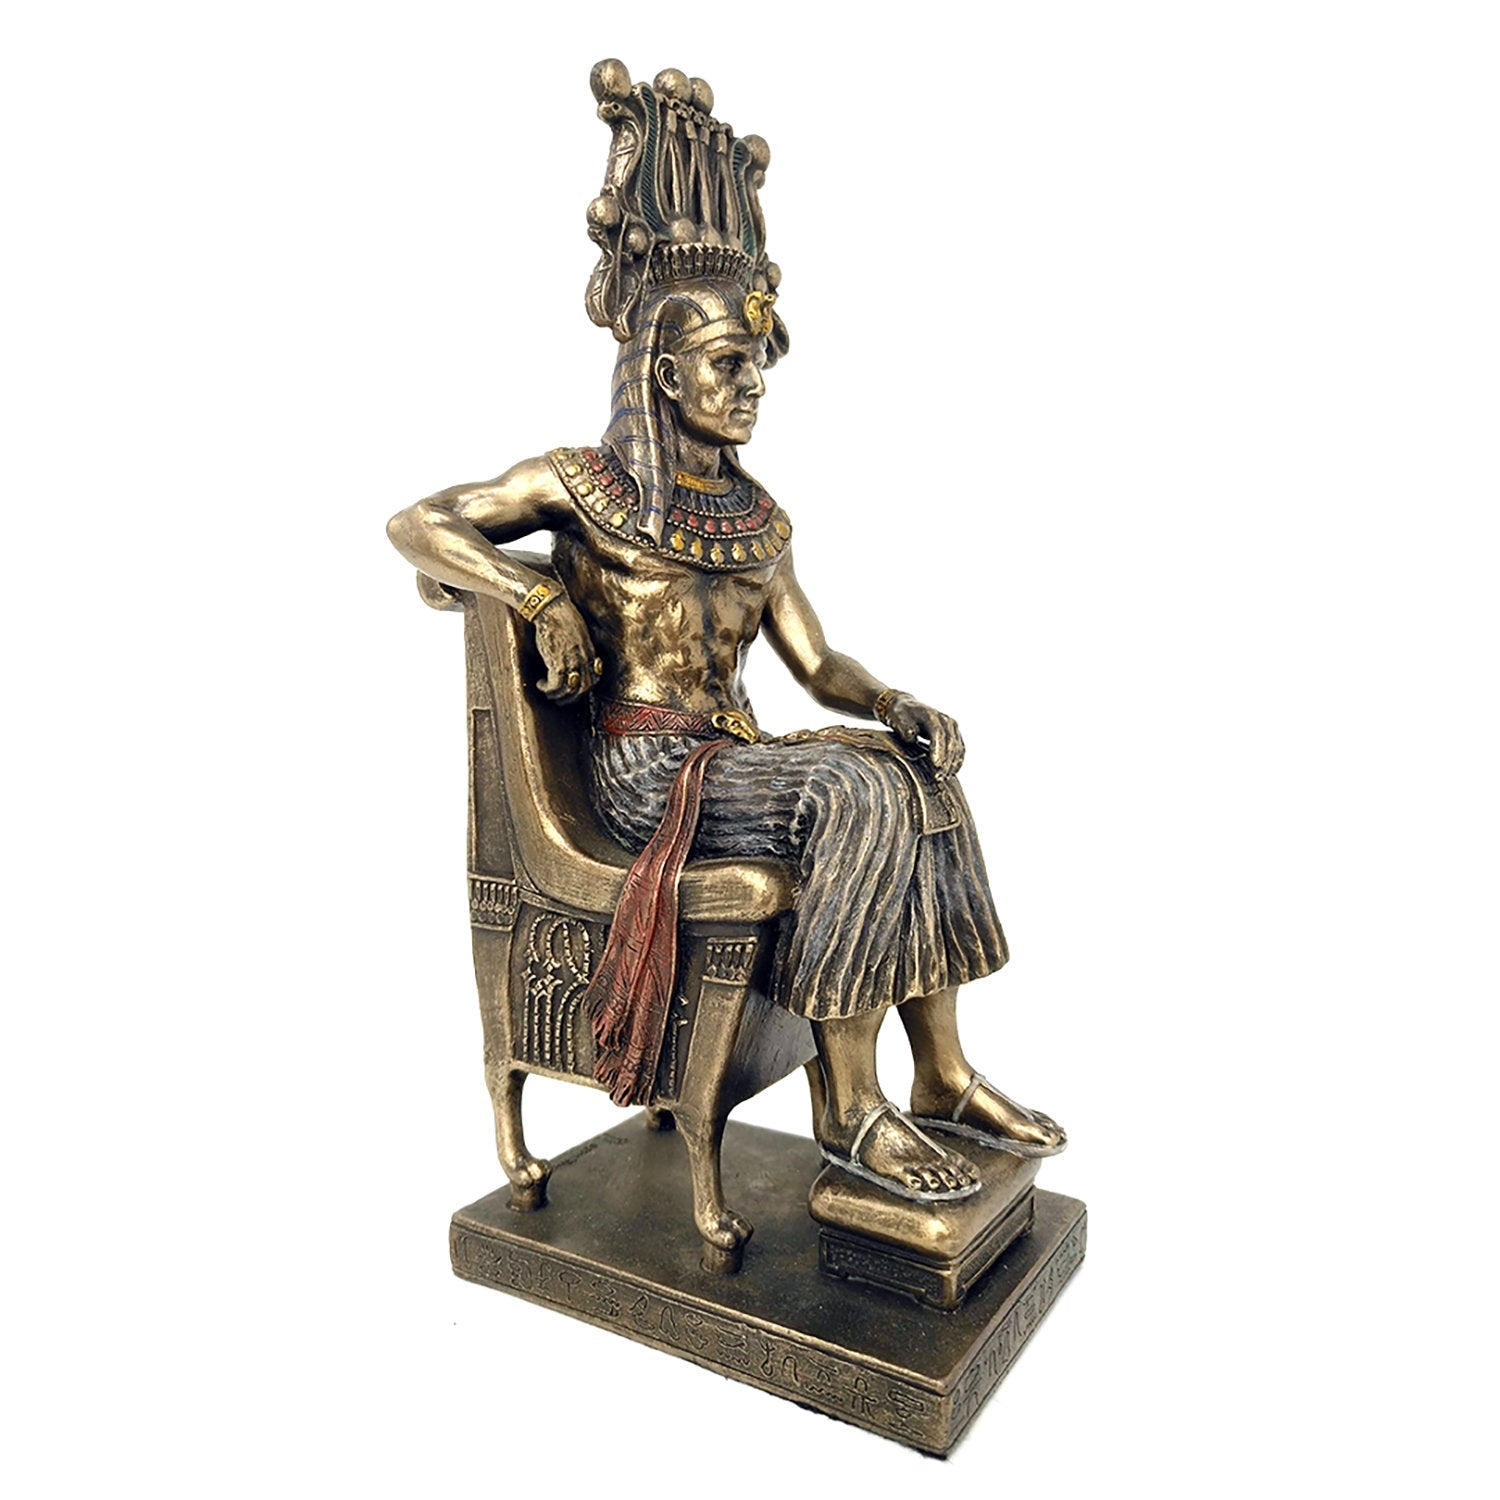 Egyptian Pharaoh sitting on Throne with Ceremonial Headdress - Bold Egyptian Pharaoh Statue in Art Deco style with Hand-painted detail